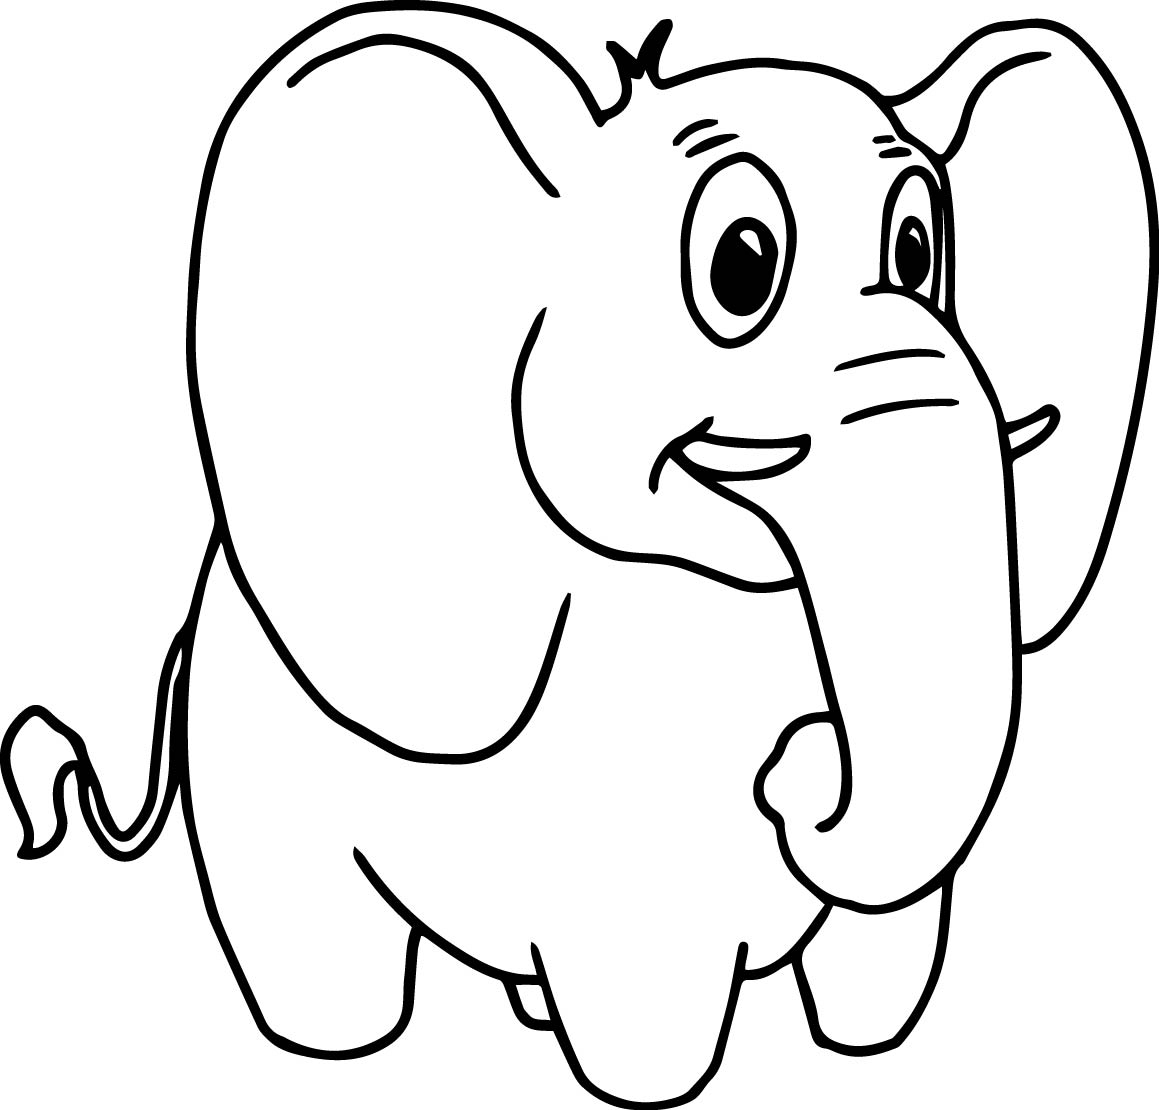 Look Elephant Coloring Page